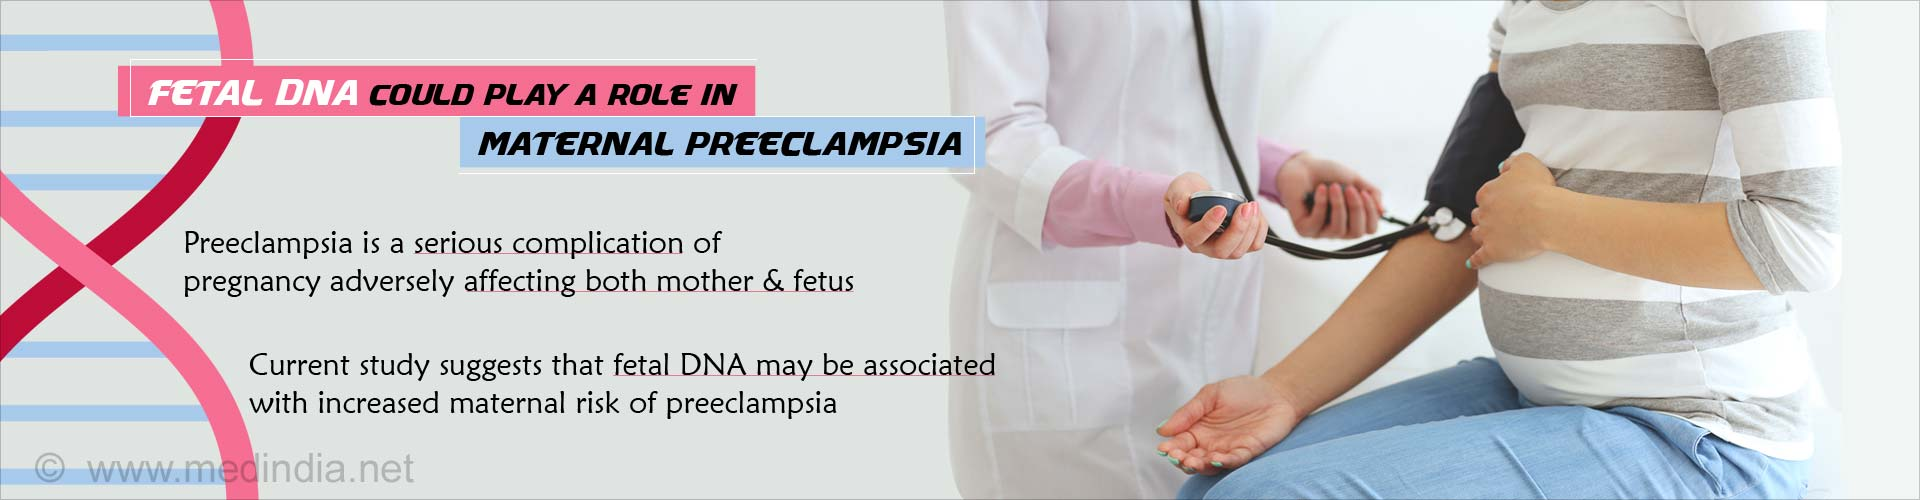 Fetal DNA could play a role in maternal pre-eclampsia